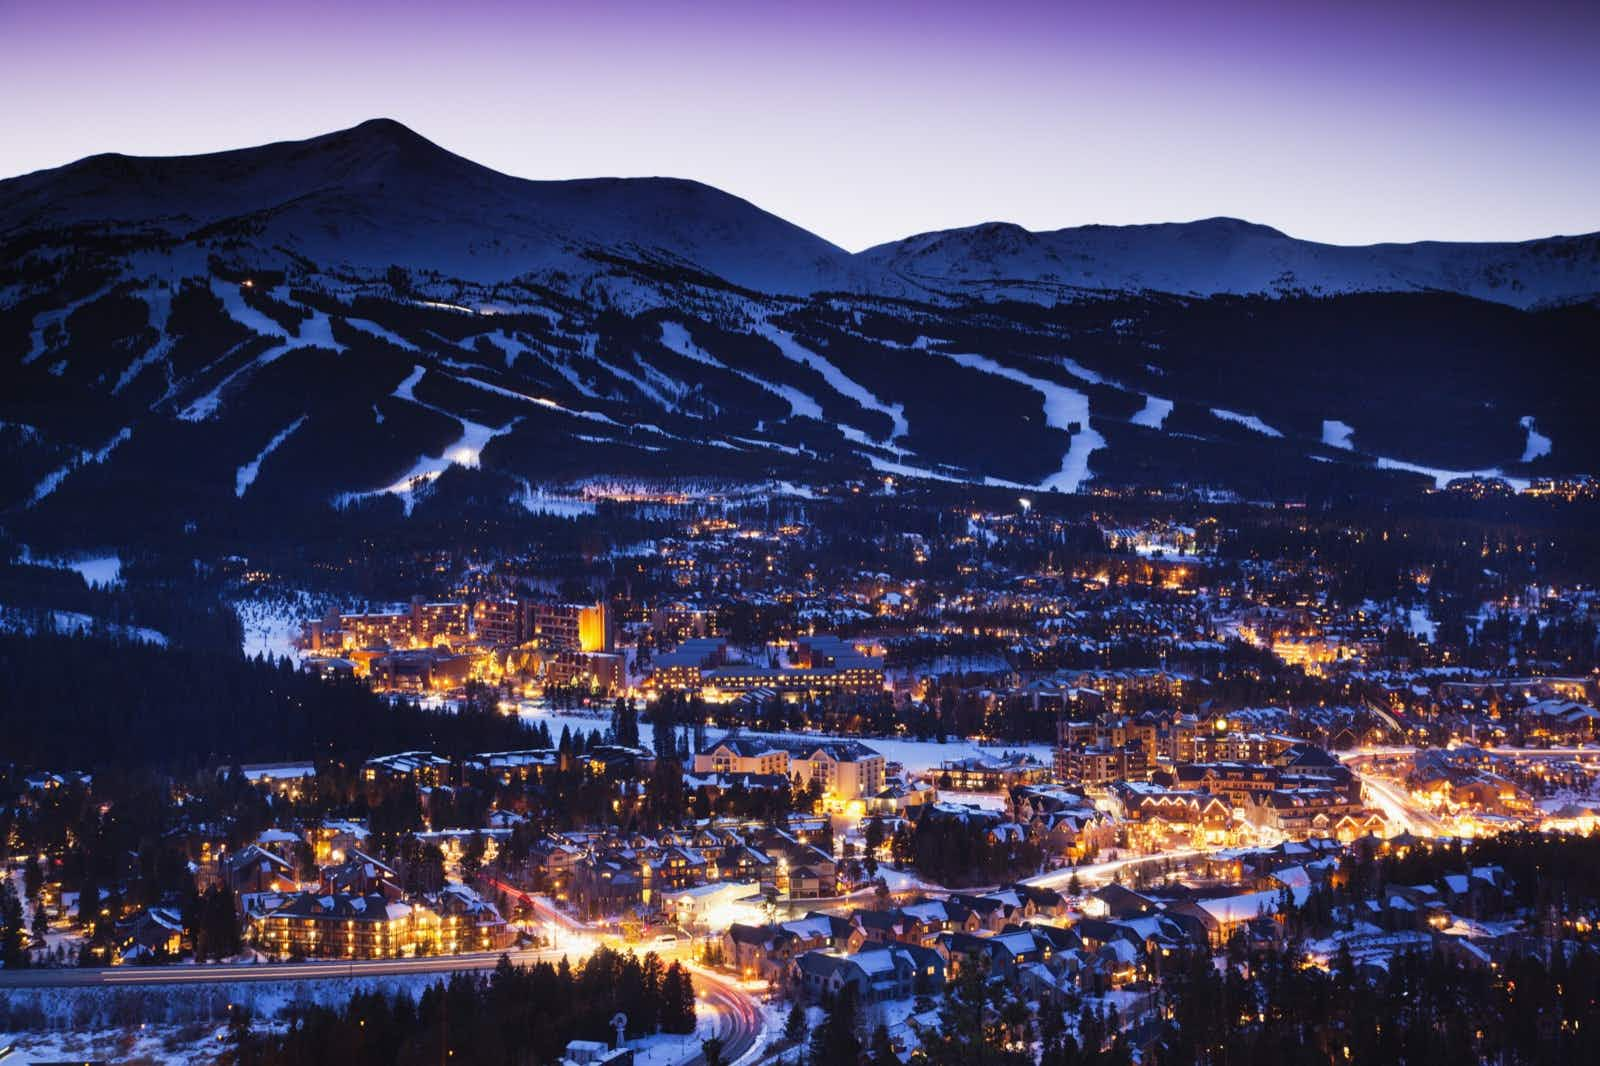 Breckenridge, Colorado has a charming downtown for shopping and dining as well as numerous art galleries, festivals and spas to enjoy © Walter Bibikow / Getty Images